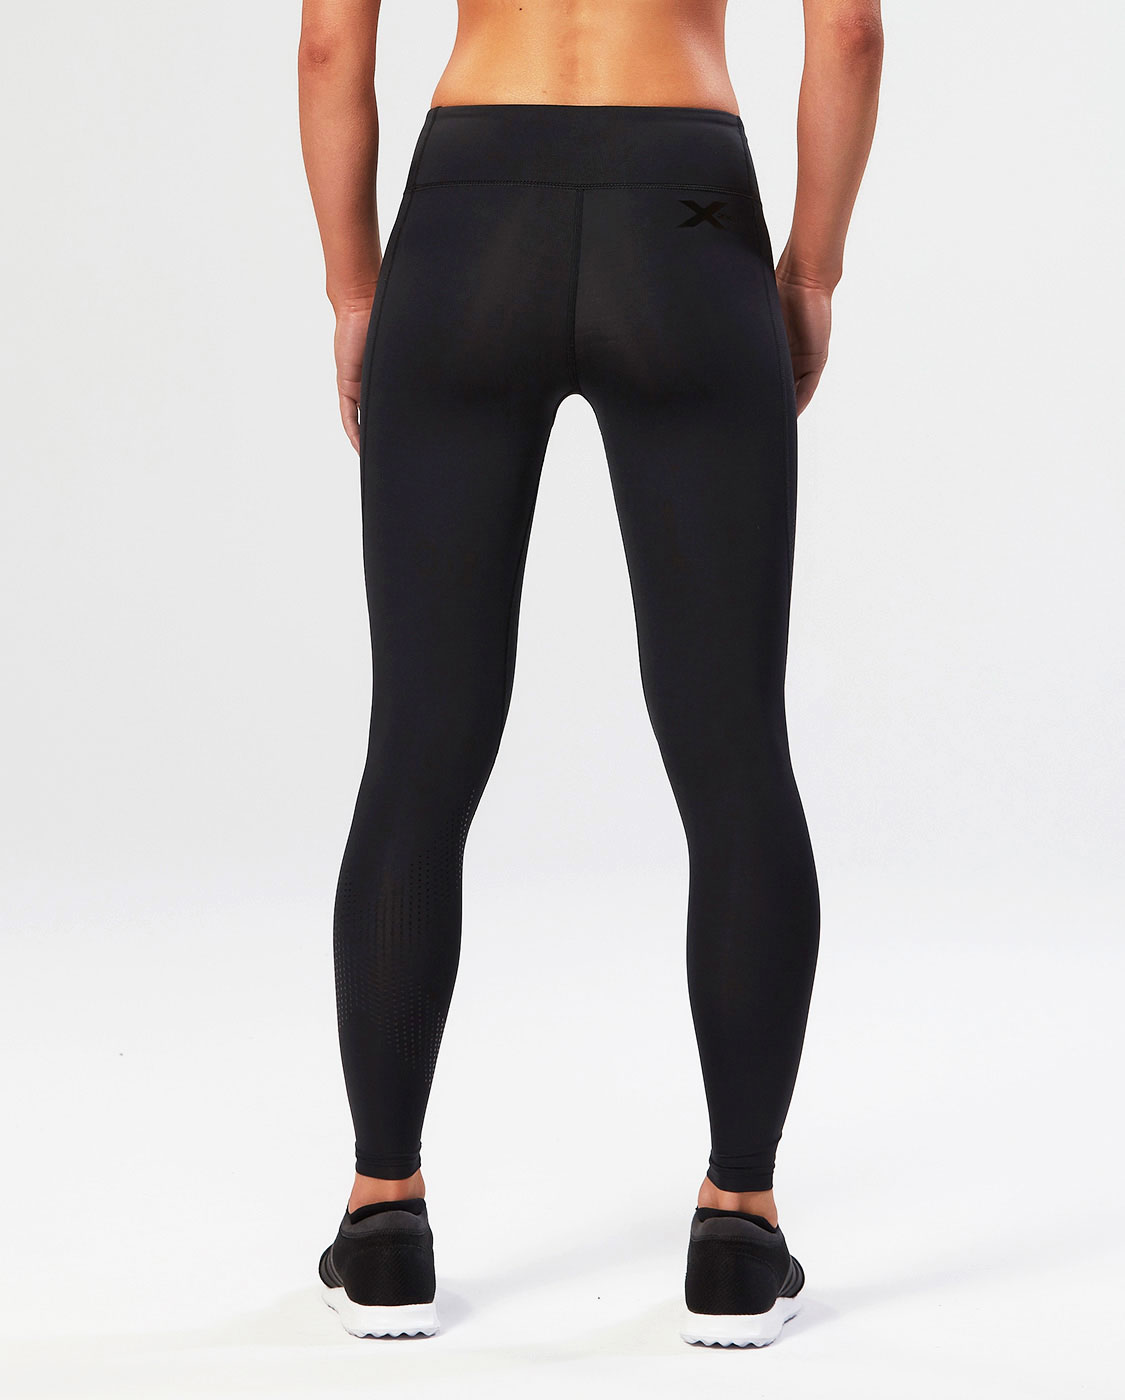 4c68d5a1cc48e 2XU Full Length Mid Rise Compression Tights Womens — TRS - The Running Shop